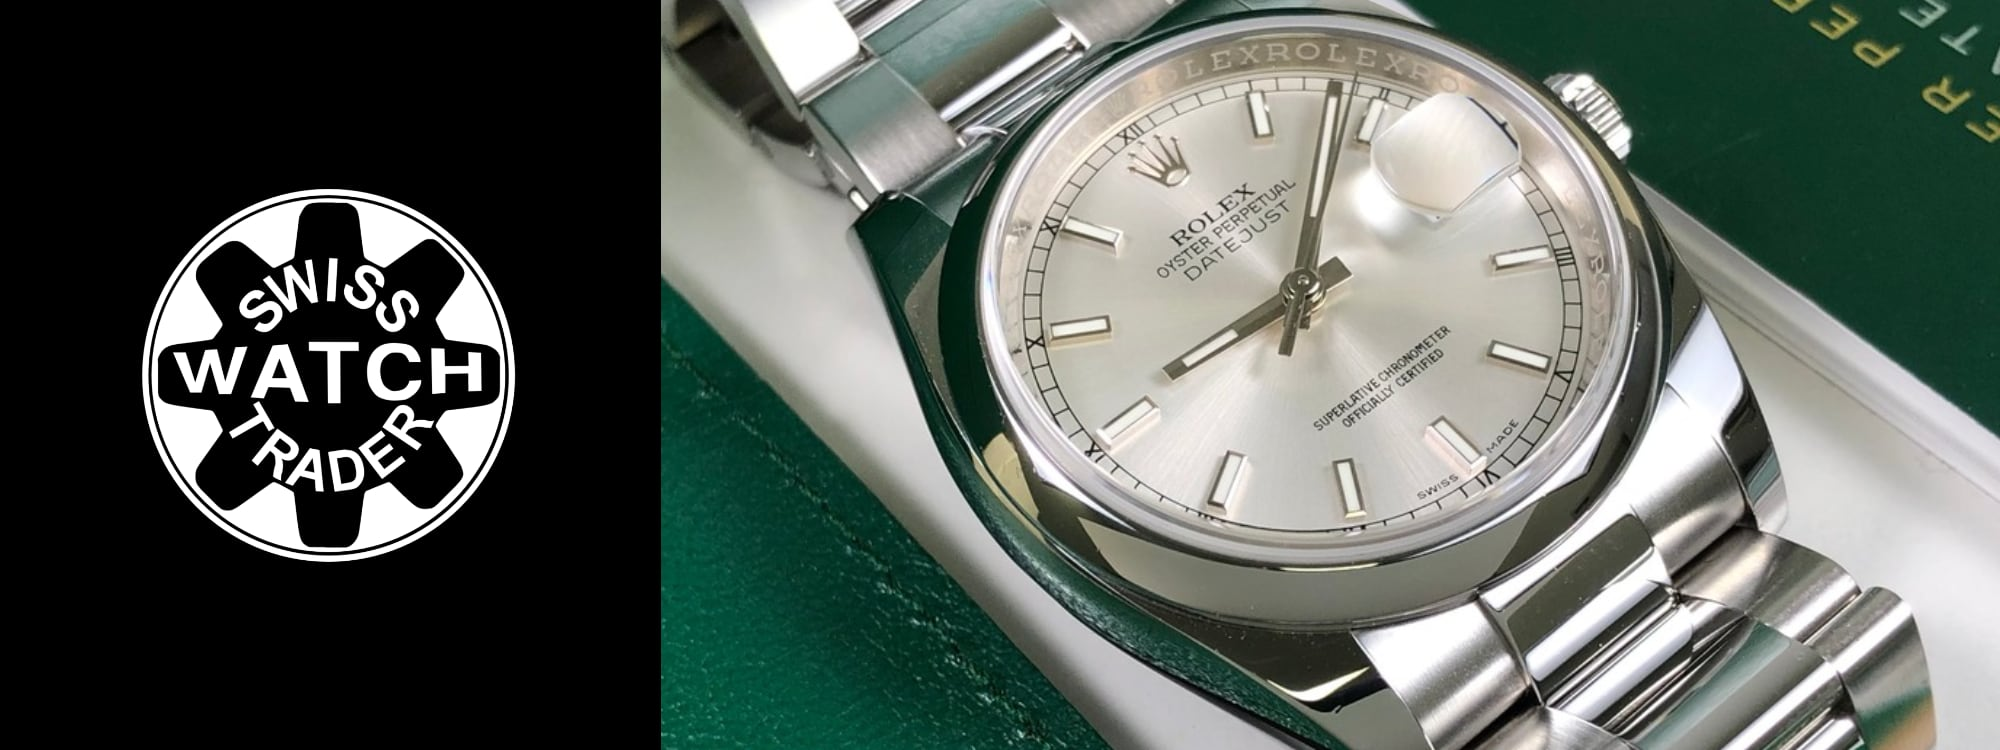 Rolex Datejust Watches For Sale